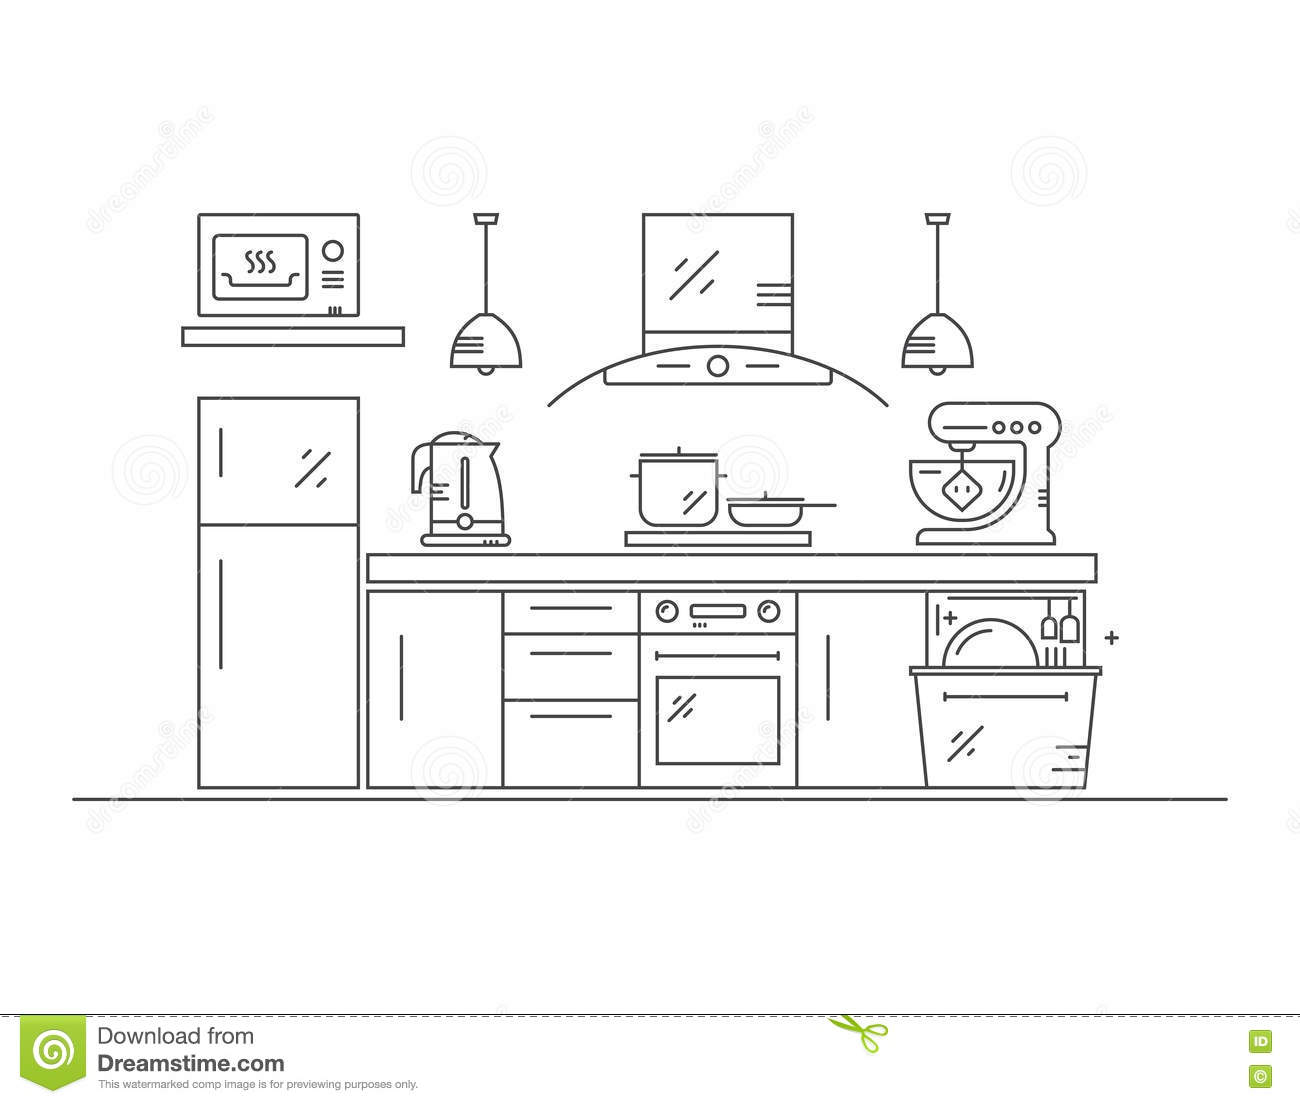 Modern Kitchen Illustration Stock Vector Illustration Of Cooking Concept 82379563